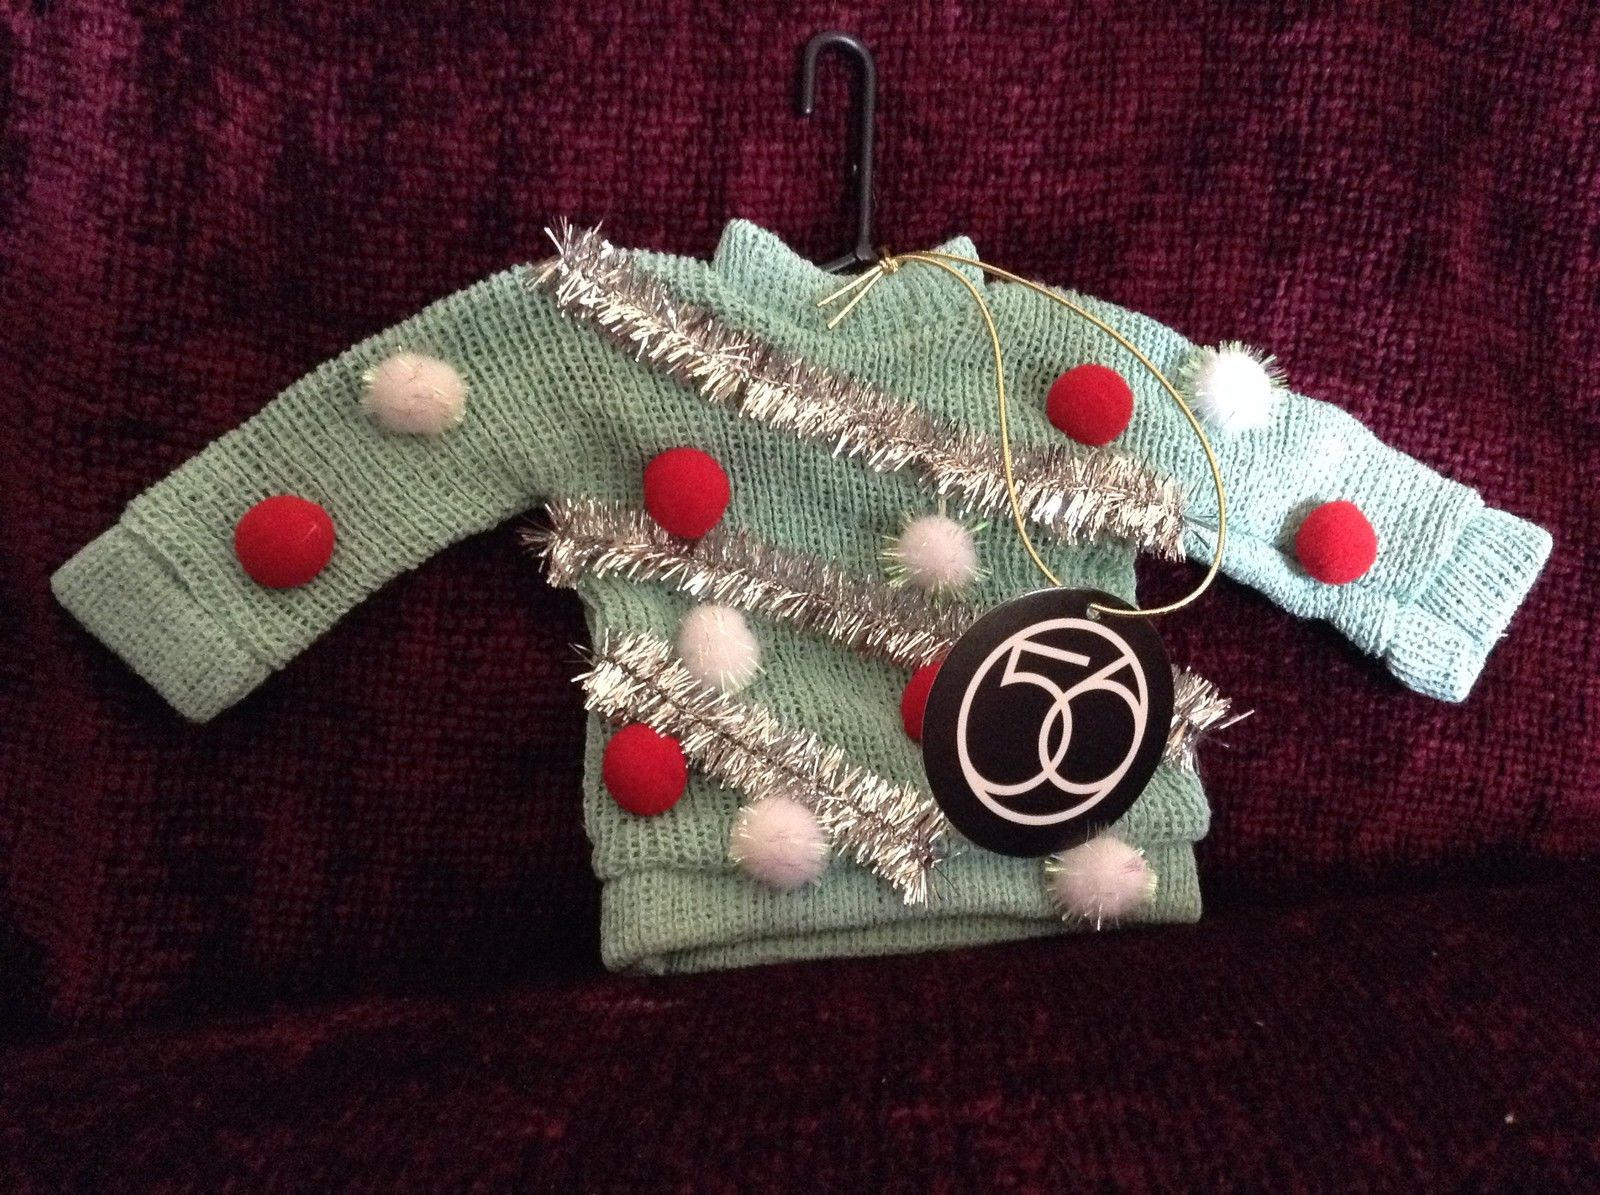 Teal Colored Poseable Ugly Sweater Ornament Silvery Decorations Red White Balls